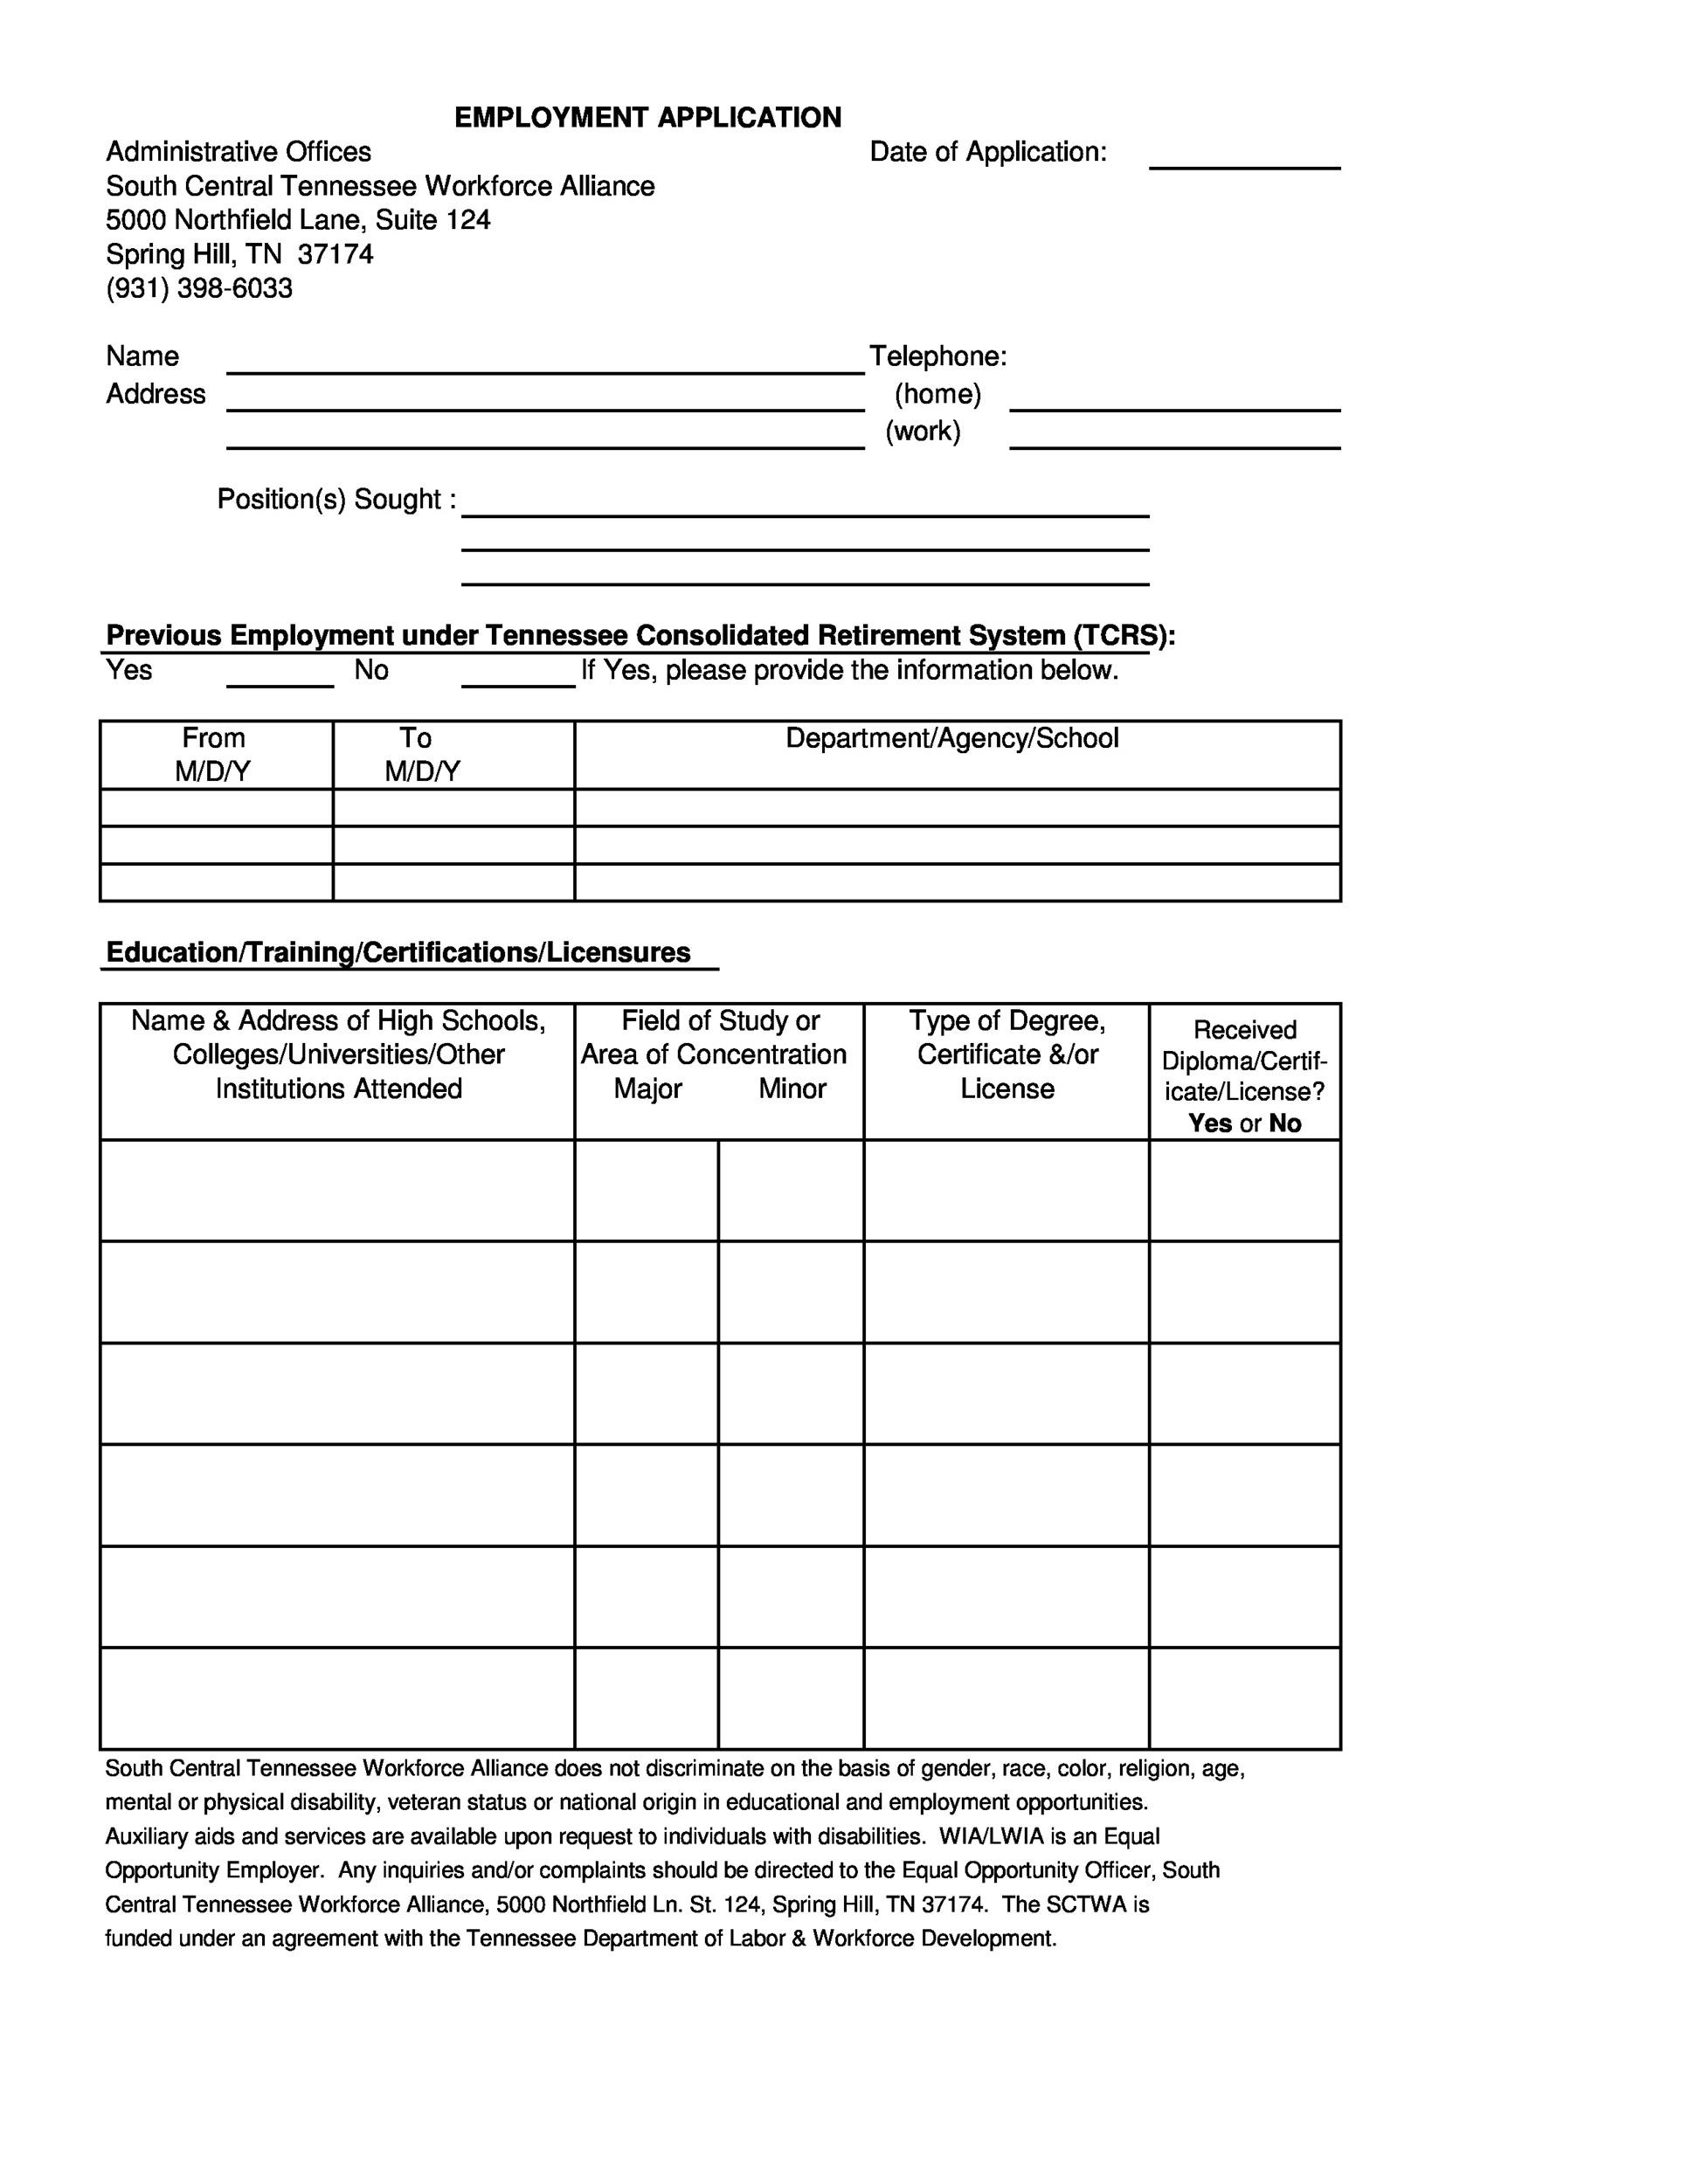 50 free employment job application form templates printable application for employment form thecheapjerseys Image collections